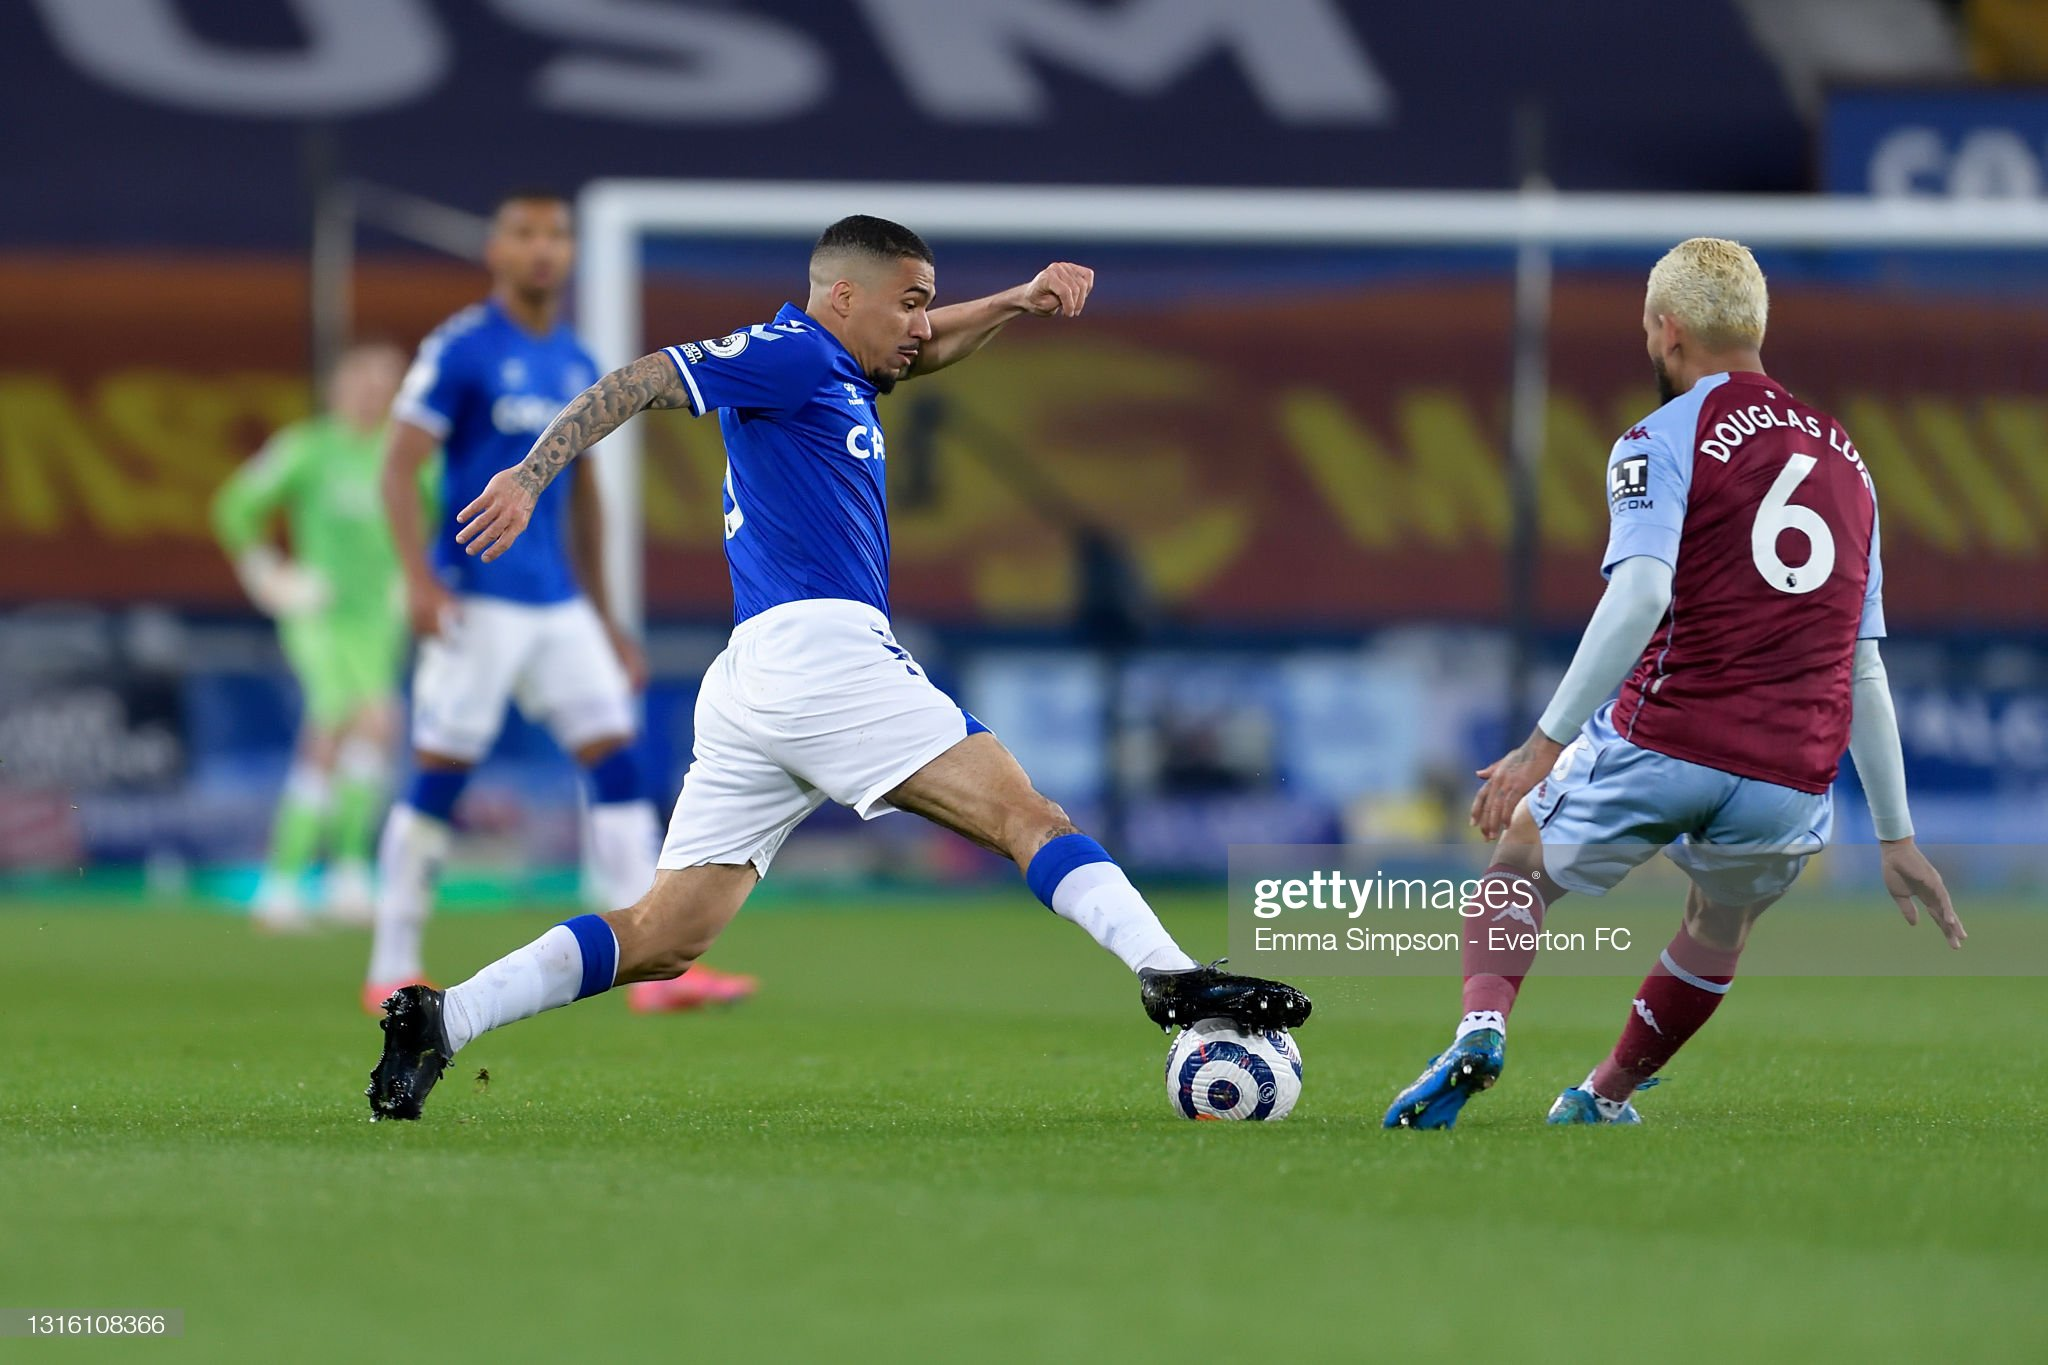 Aston Villa vs Everton Preview, prediction and odds